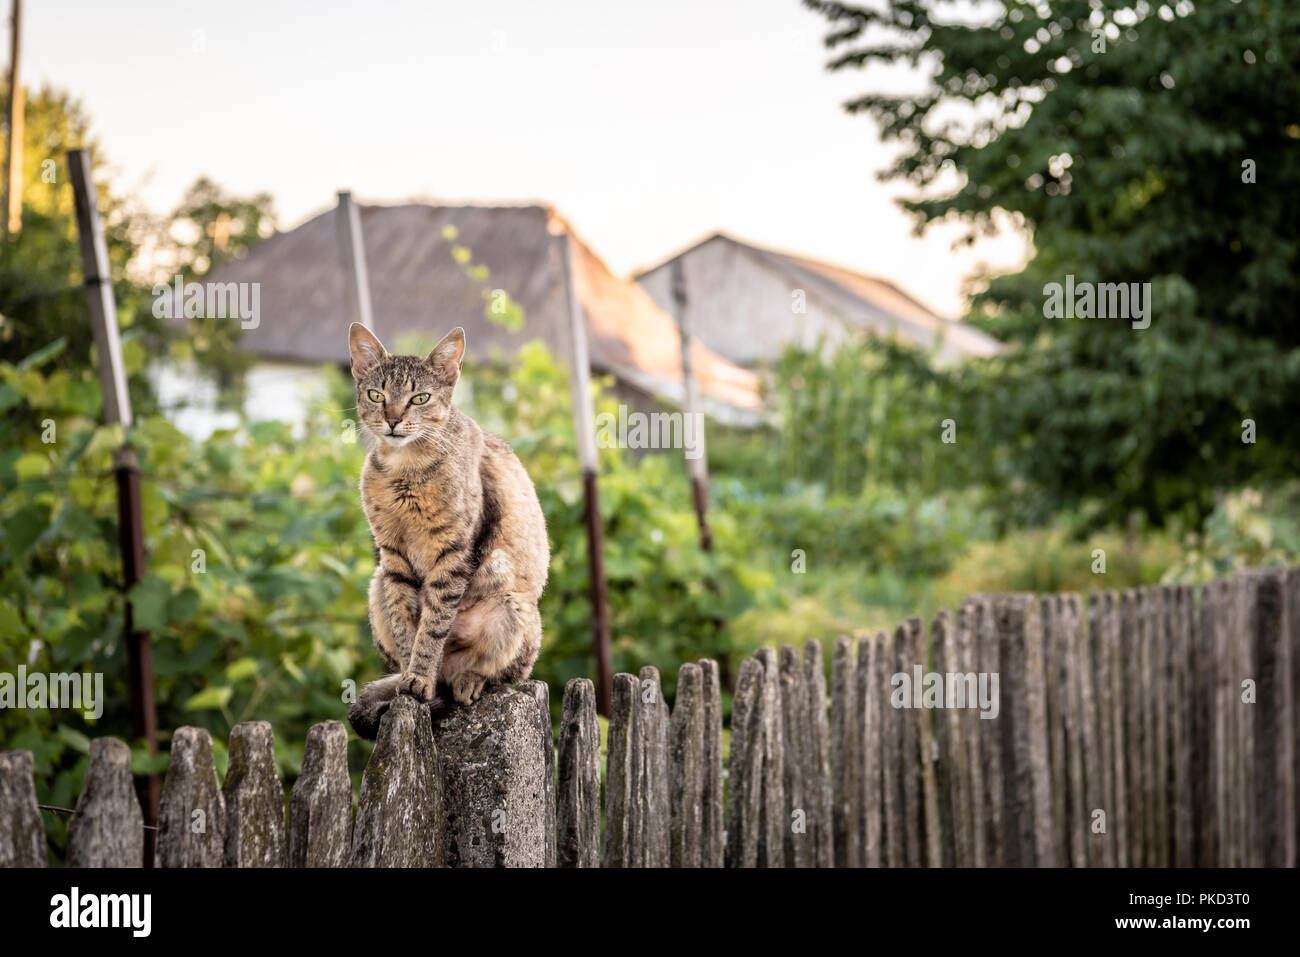 https://c8.alamy.com/comp/PKD3T0/adult-cat-sits-on-a-weathered-wooden-fence-in-a-countryside-scenery-PKD3T0.jpg